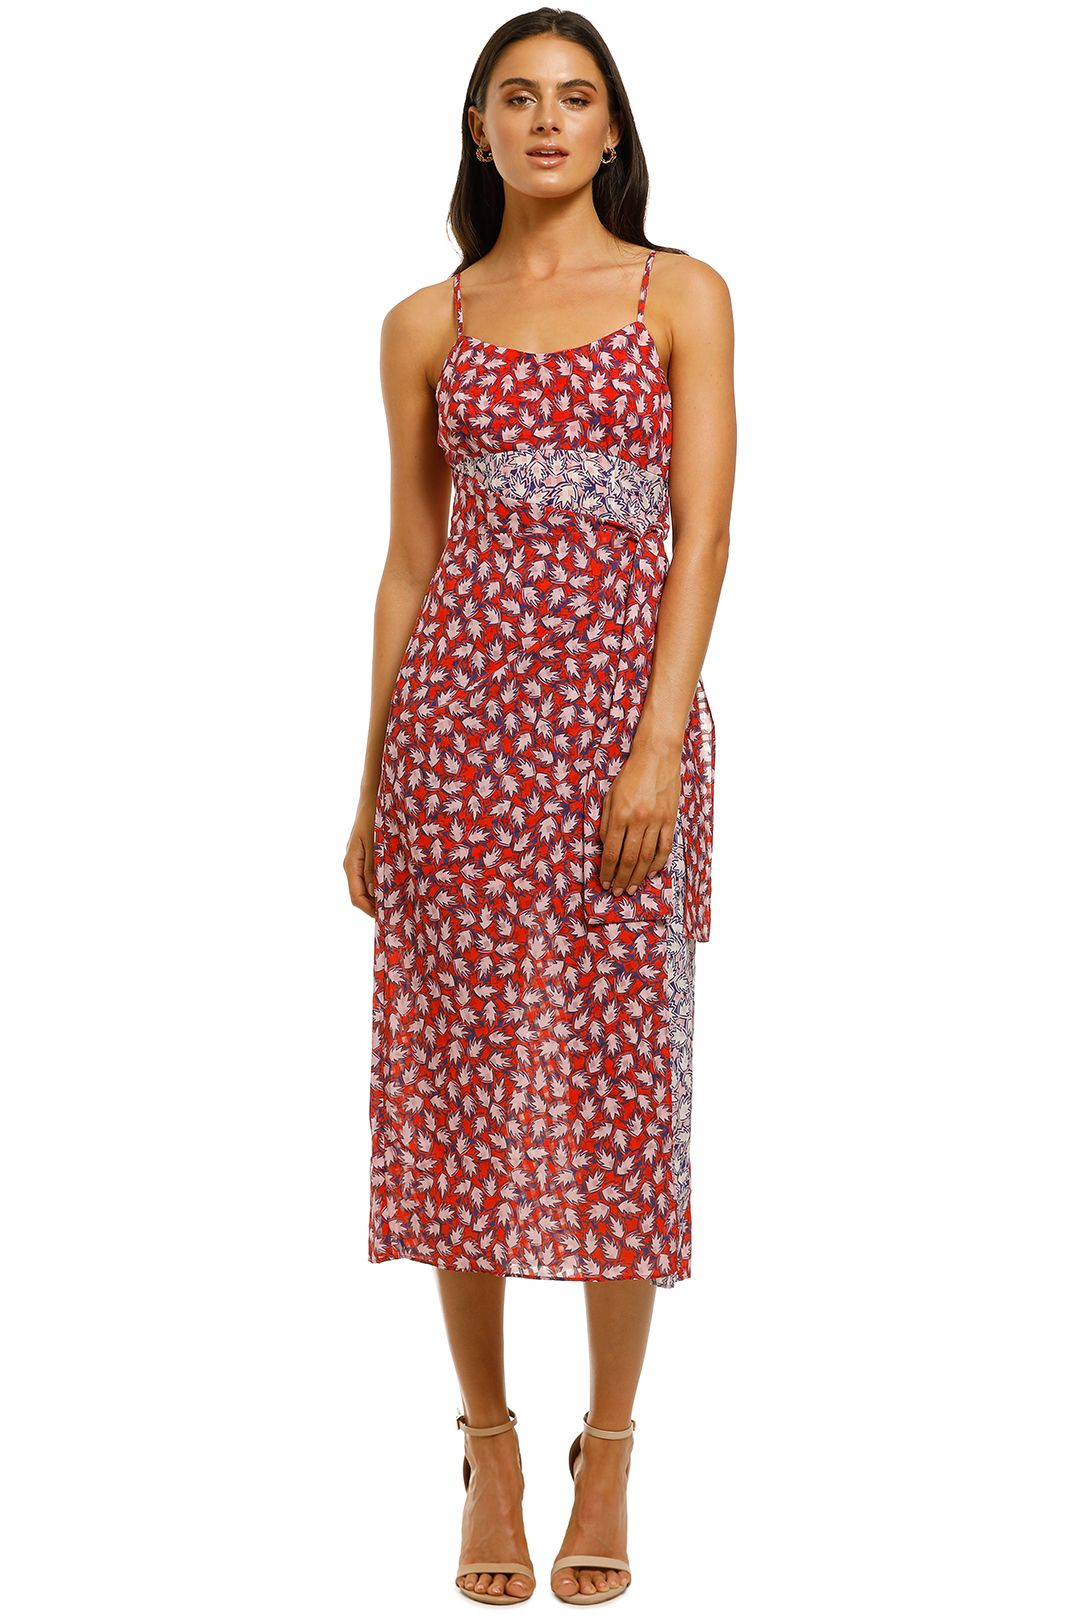 The-East-Order-Anouk-Midi-Dress-Red-Pink-Leaf-Front